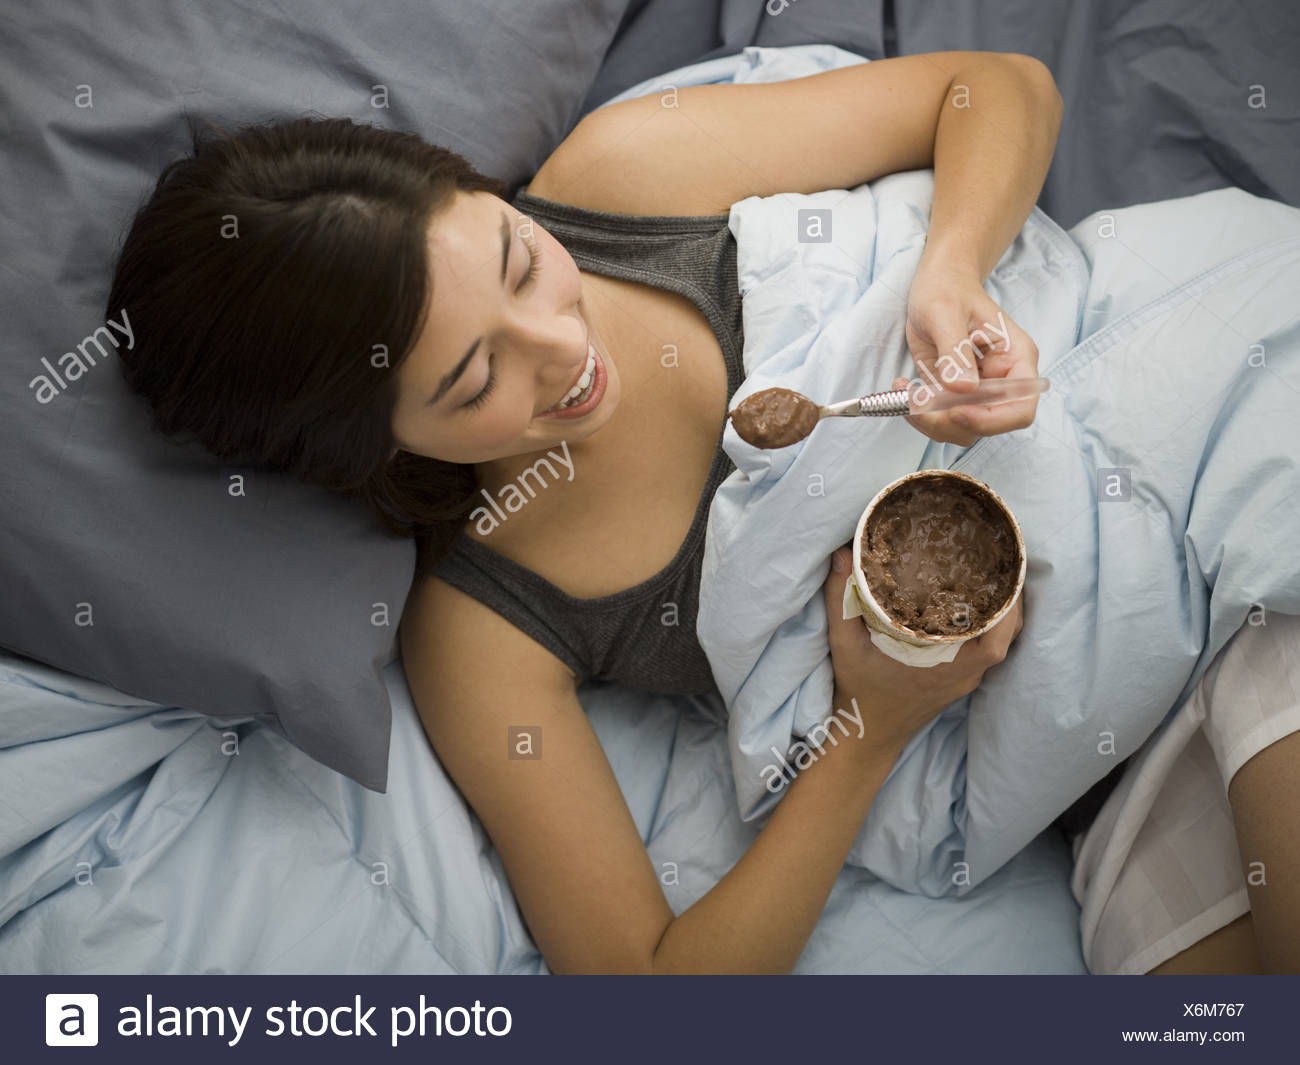 Woman lying down in bed spilling chocolate ice cream on blanket - Stock Image